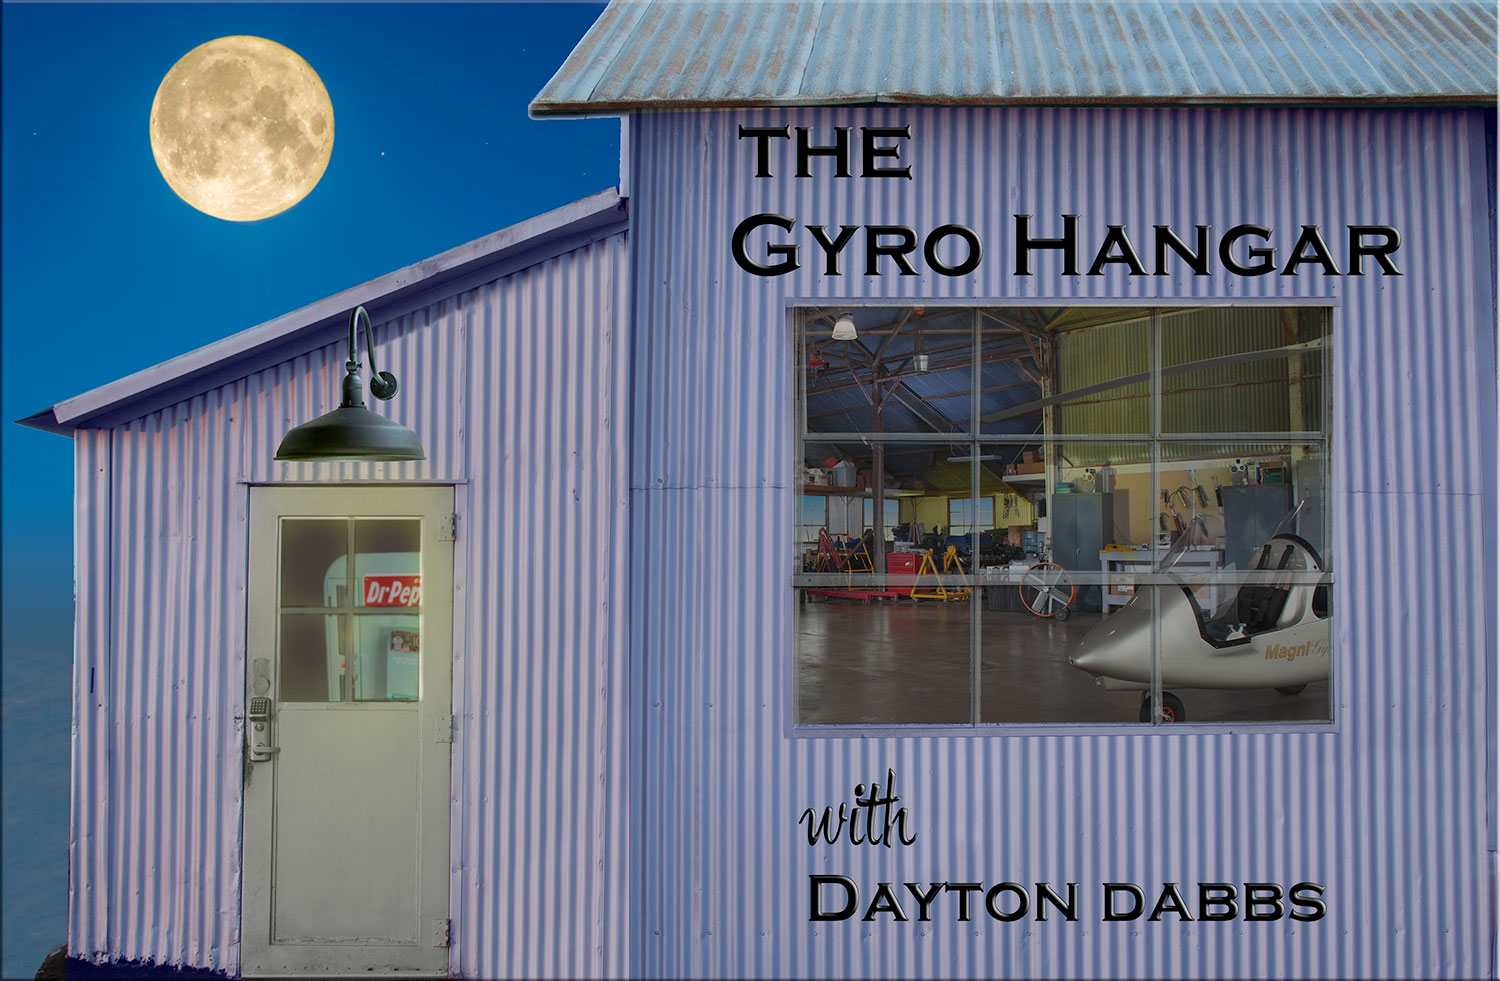 The Gyro Hanger - With Dayton Dabbs